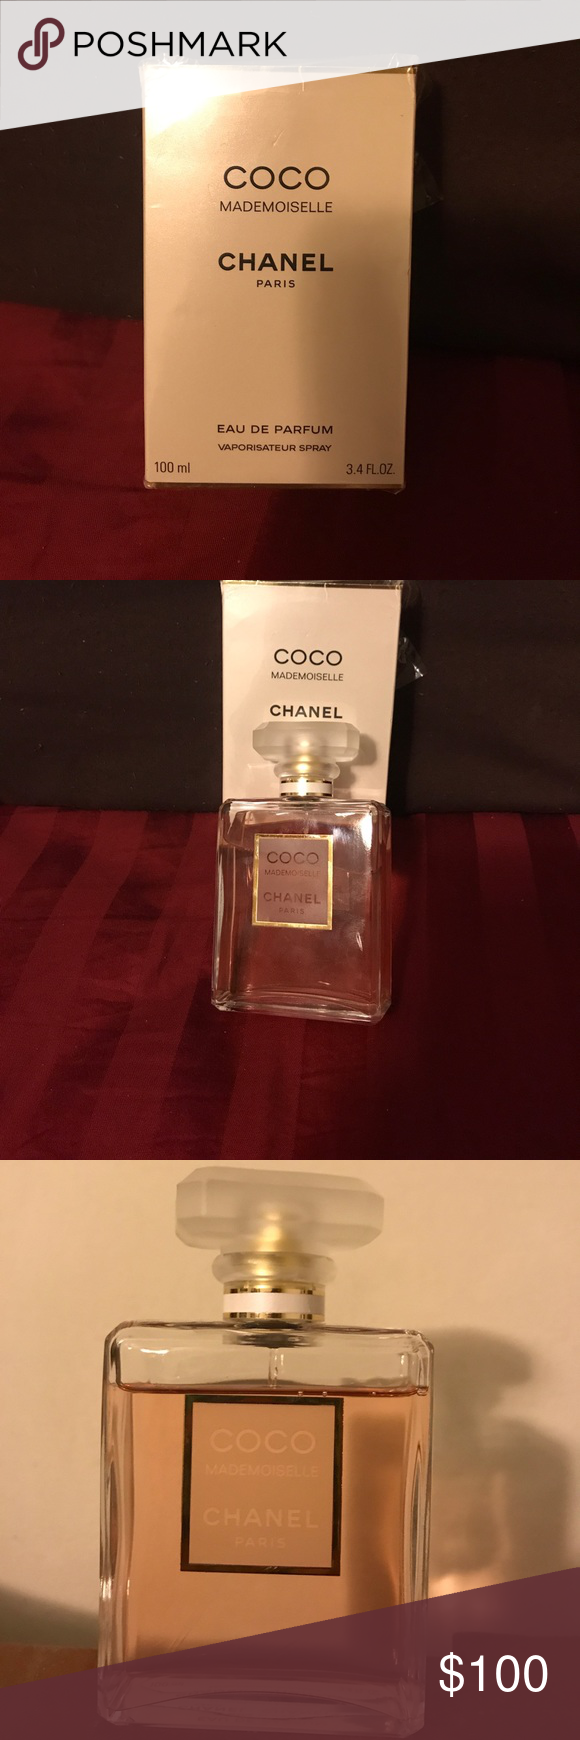 Chanel Coco Mademoiselle Authentic Perfume Pinterest Edp 100ml I Used It For 3 Times Onlypls